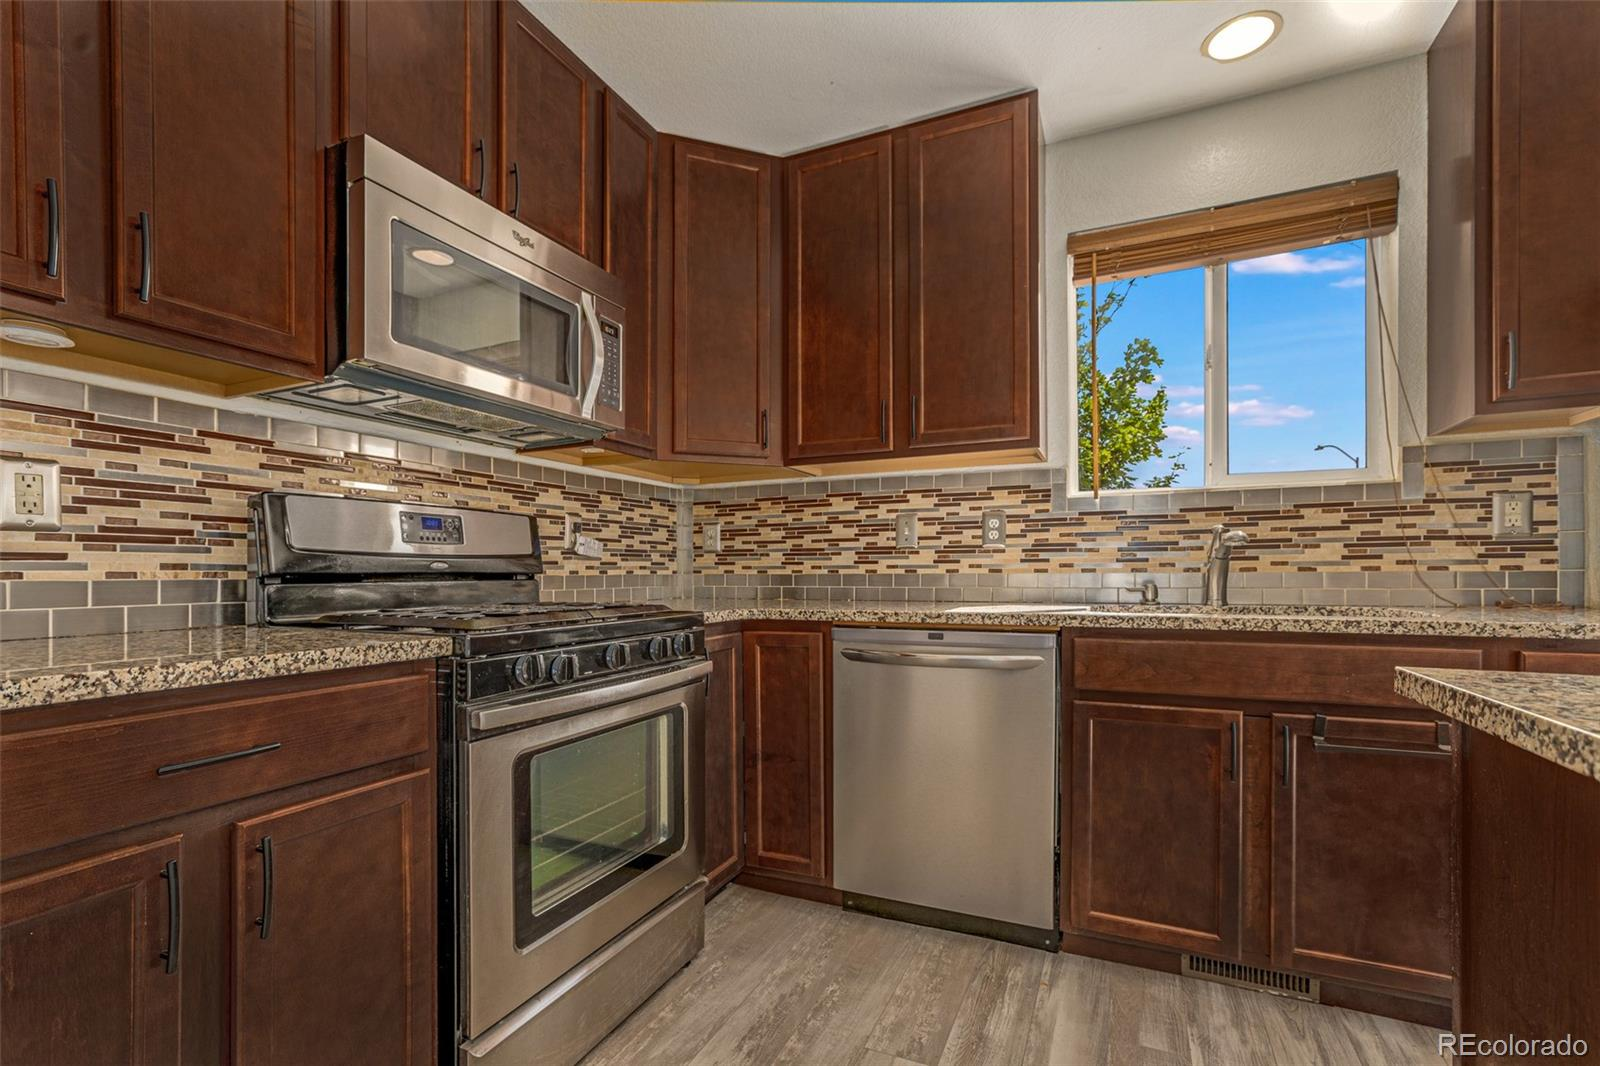 MLS# 6387968 - 14 - 7580 Middle Bay Way, Fountain, CO 80817